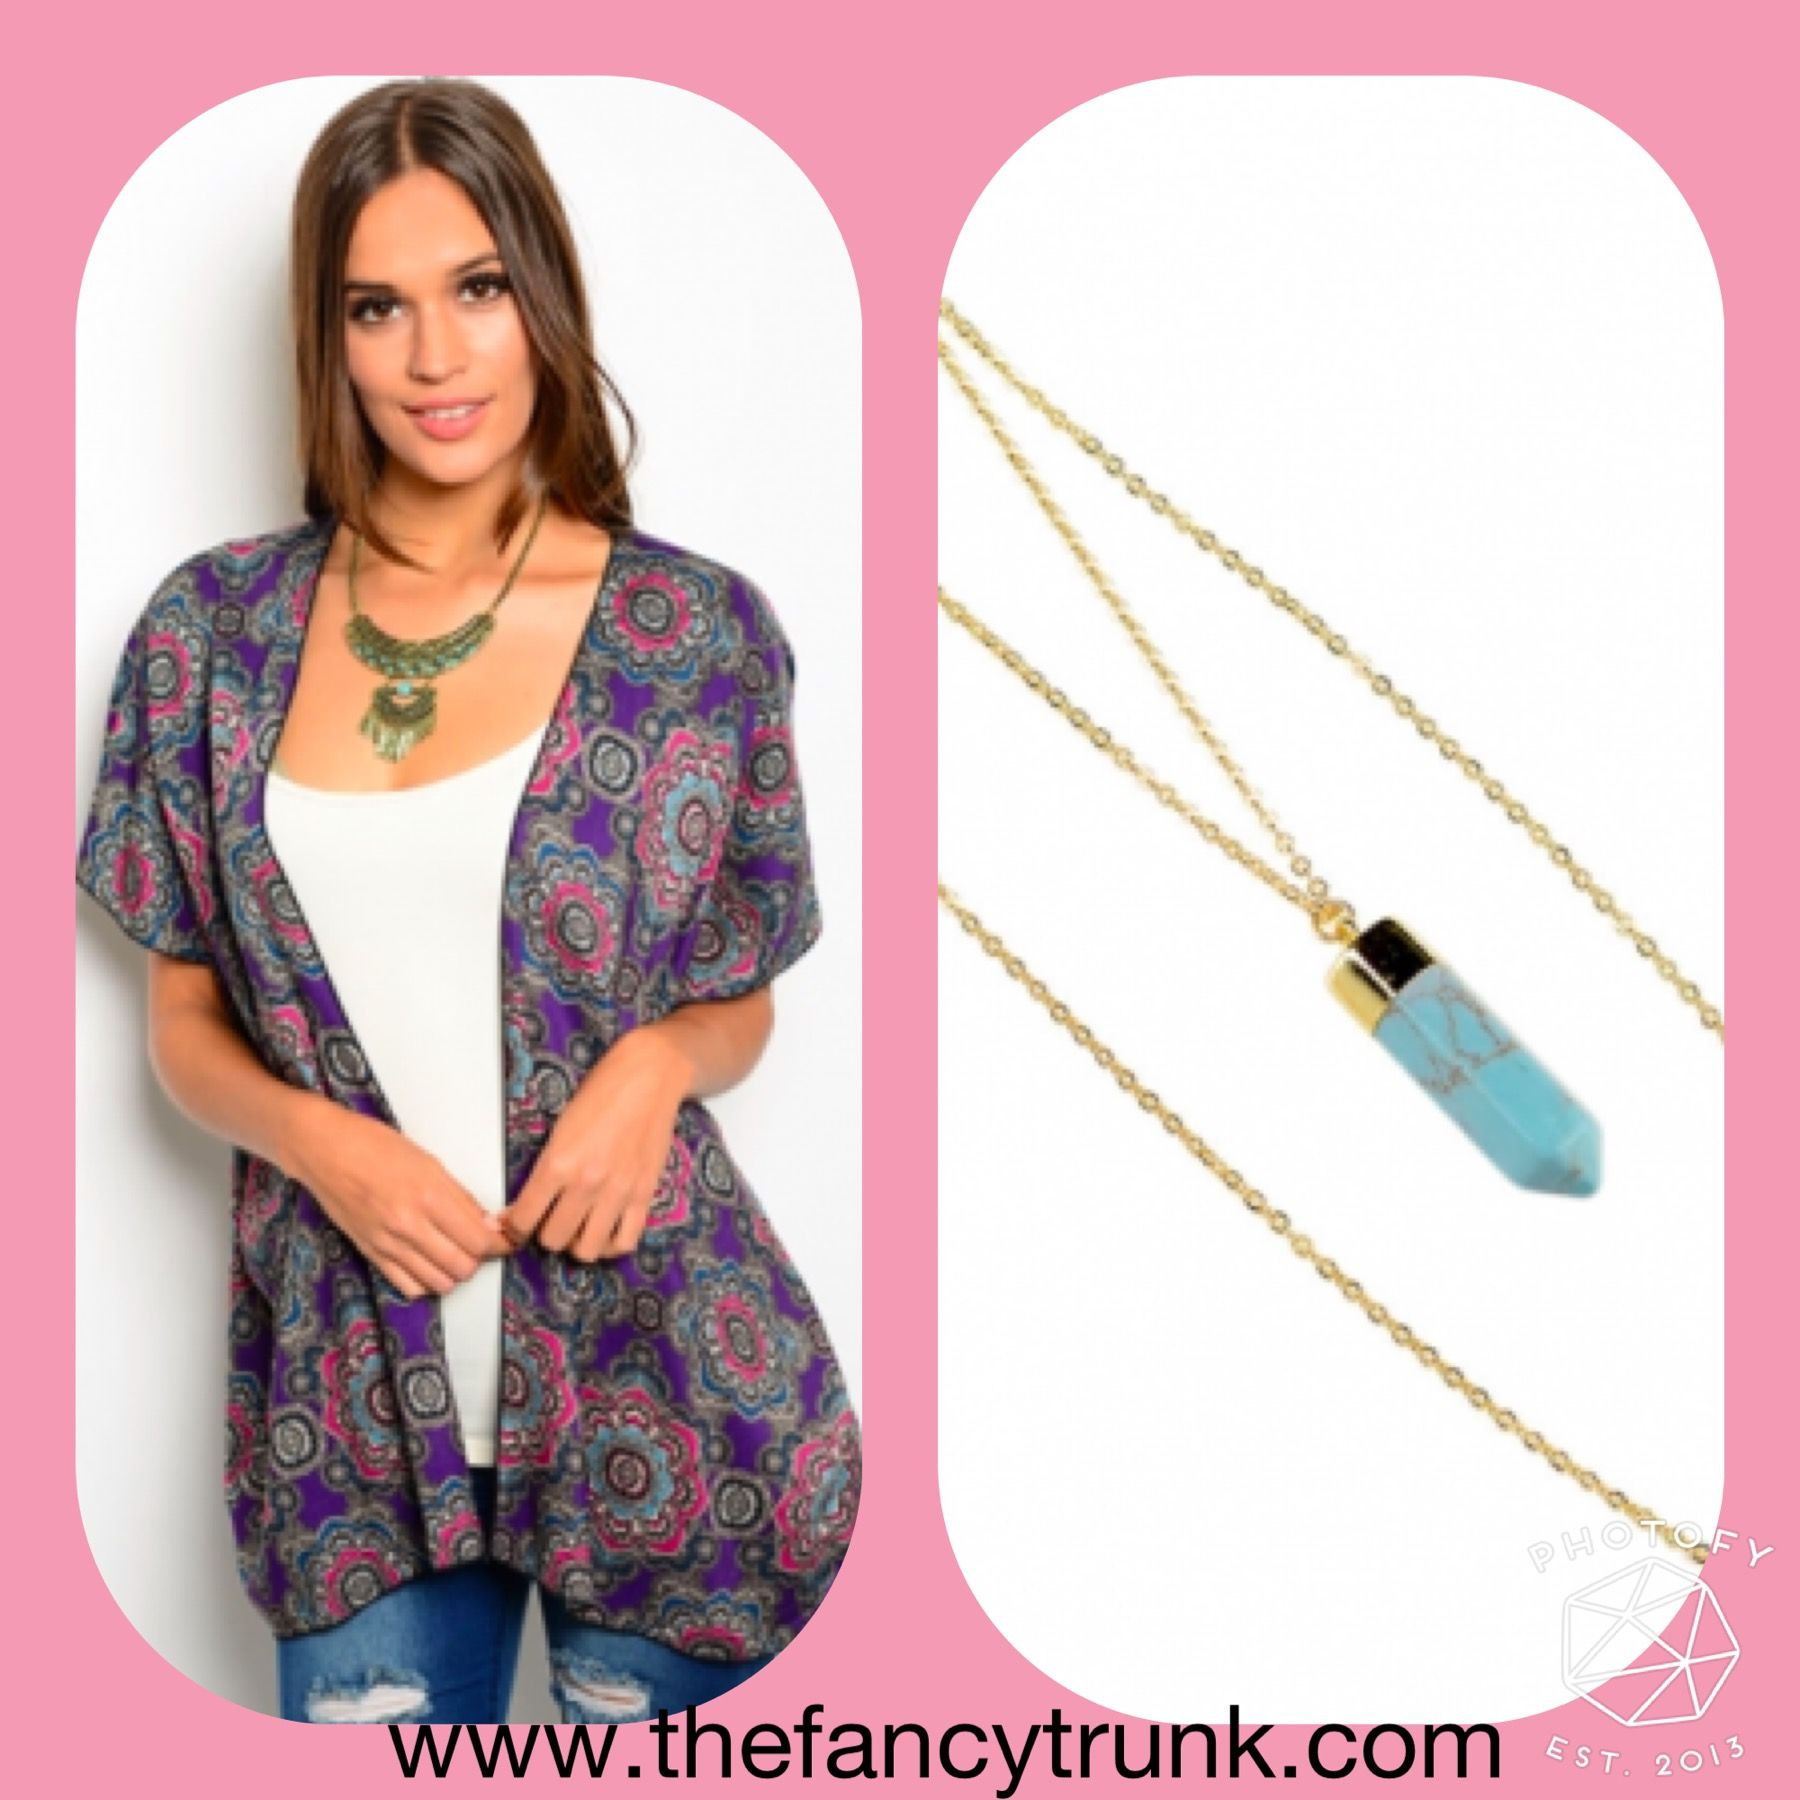 Our dazed kimono with our turquoise stone necklace! #style #musthave #newarrivals #womensfashion